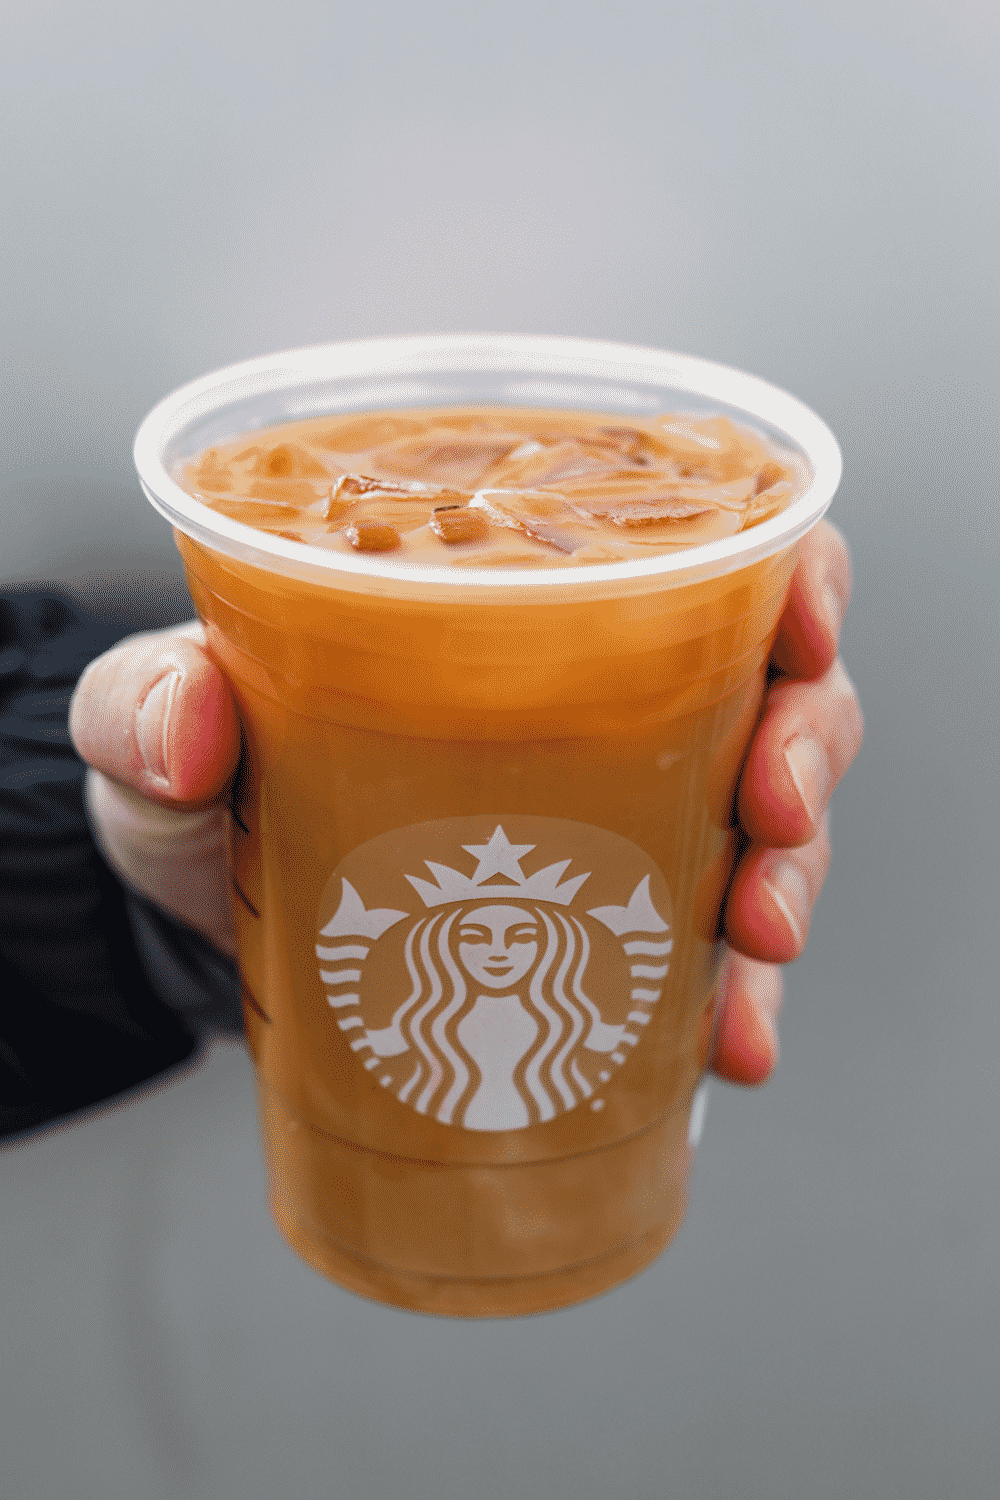 A hand holding a cup of Starbucks iced flat white.